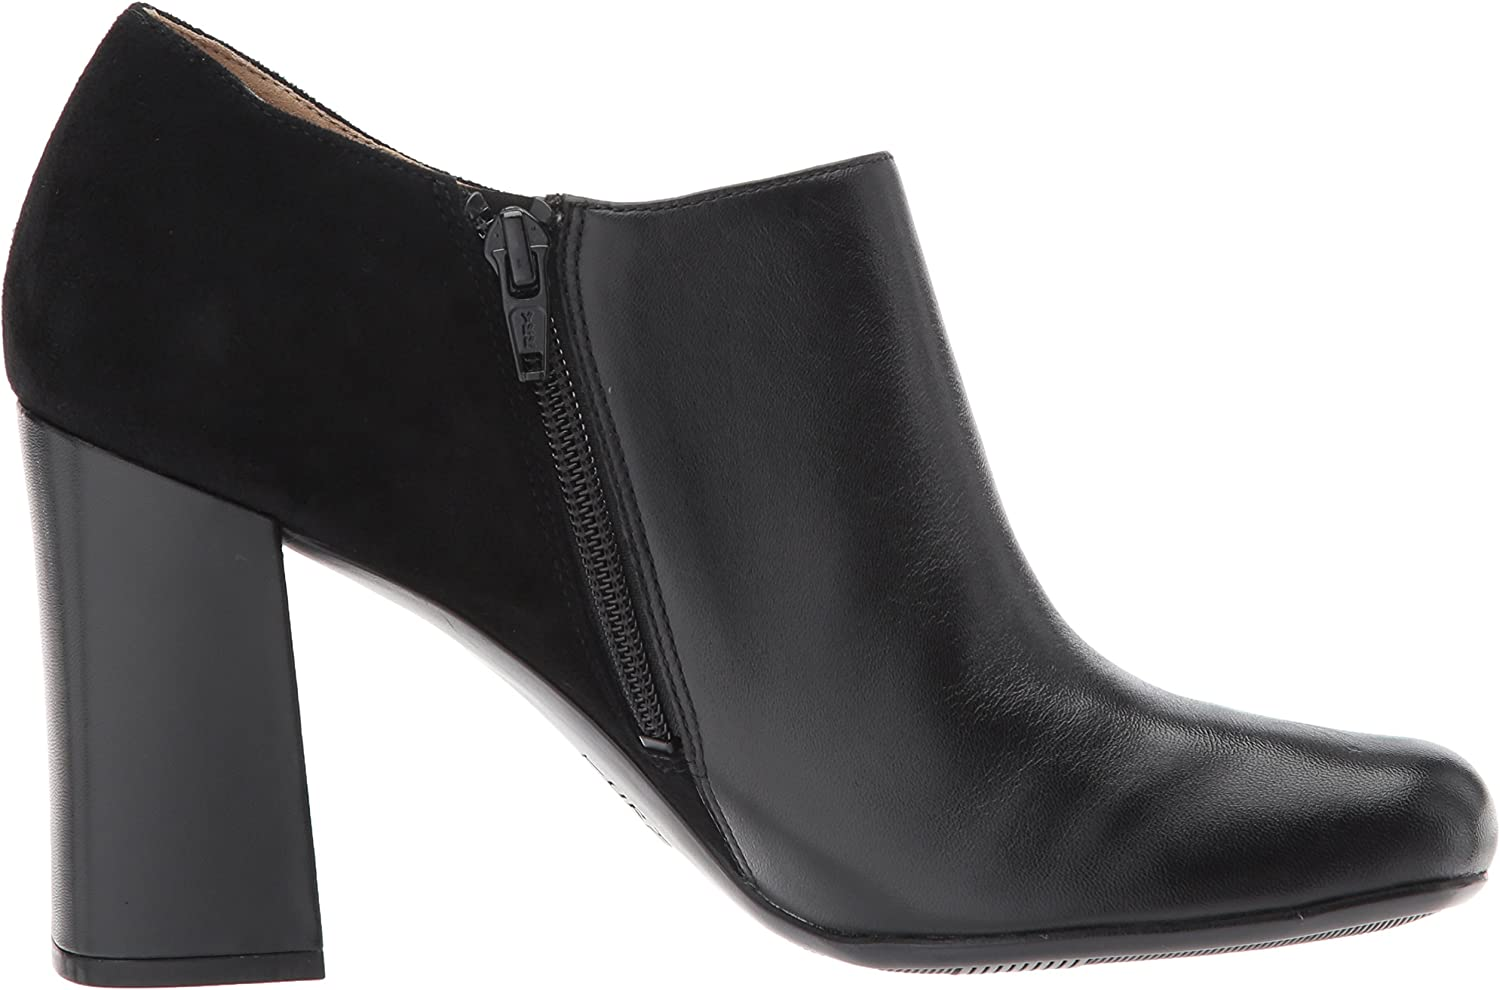 Naturalizer Womens Rainy Ankle Bootie